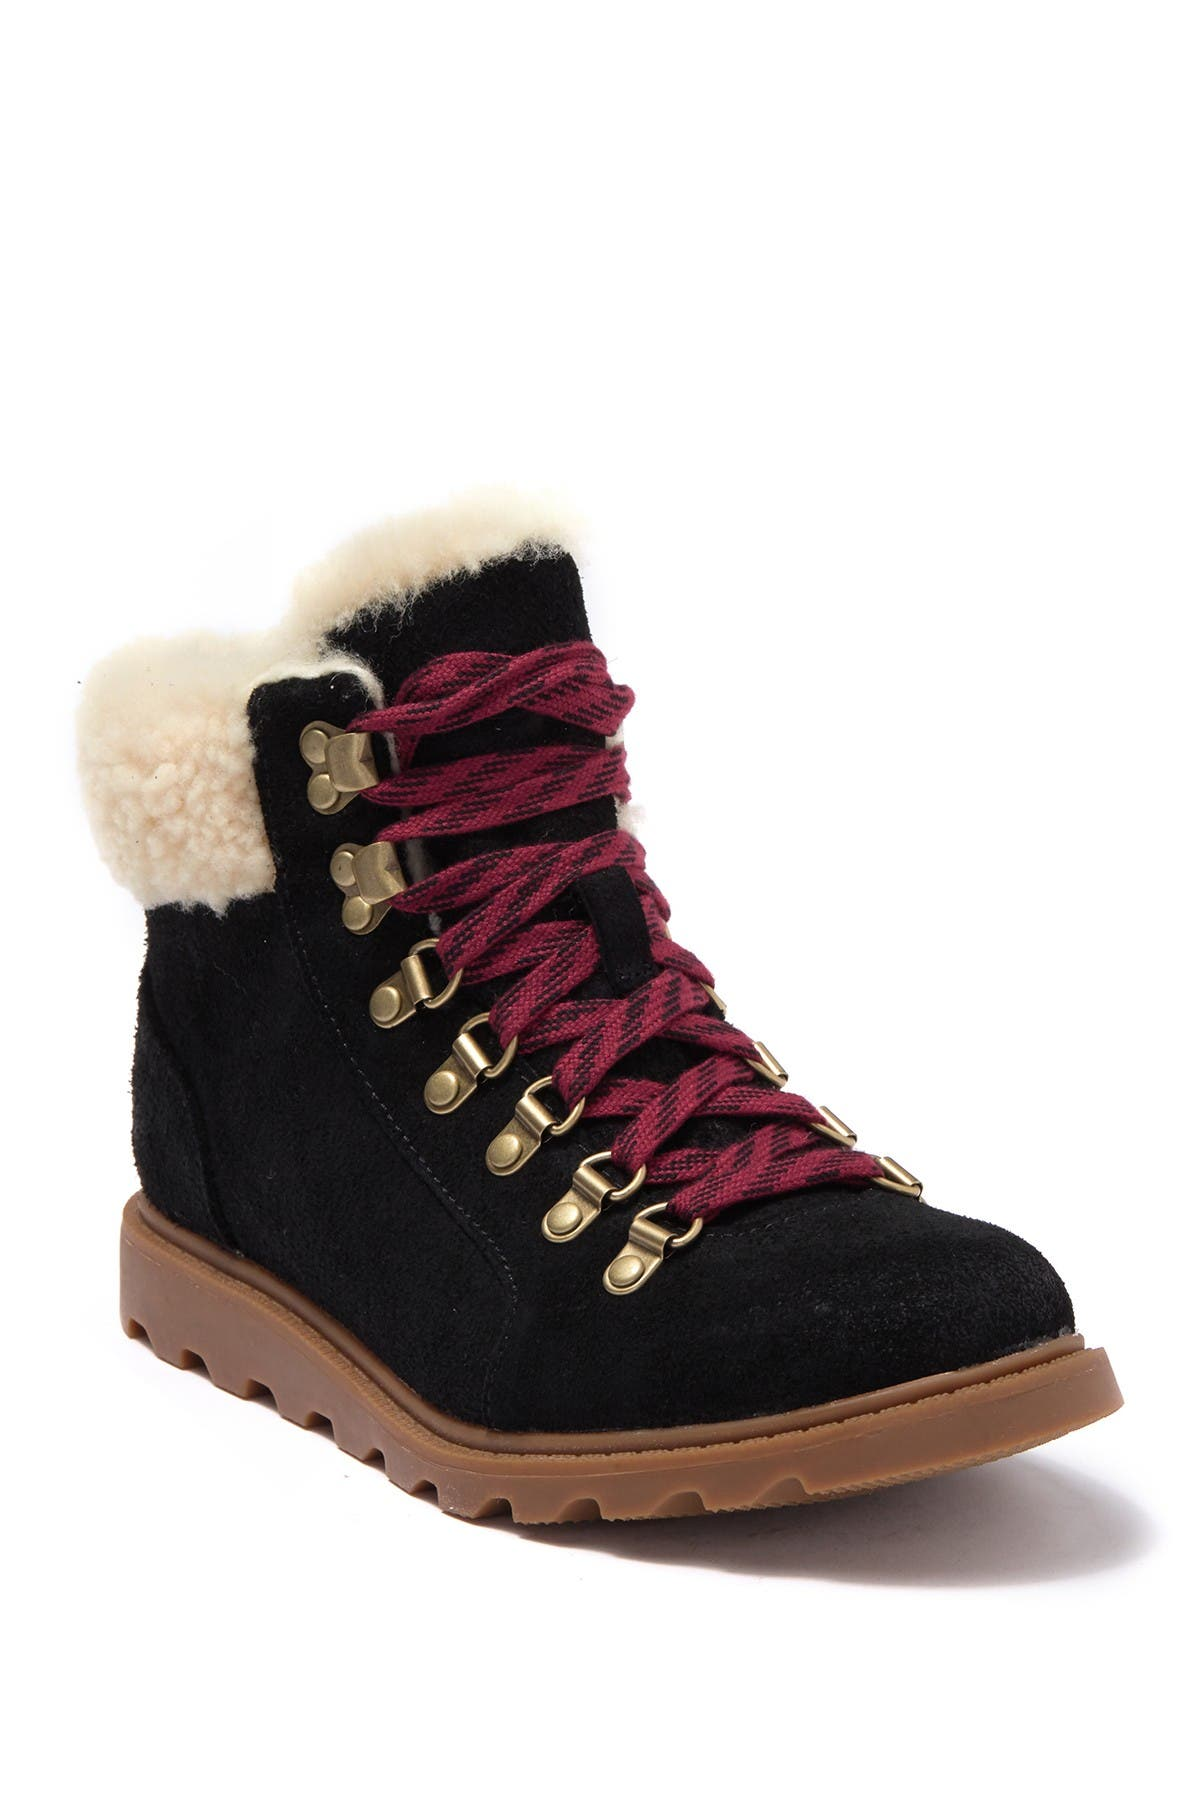 Ainsley Conquest Genuine Shearling